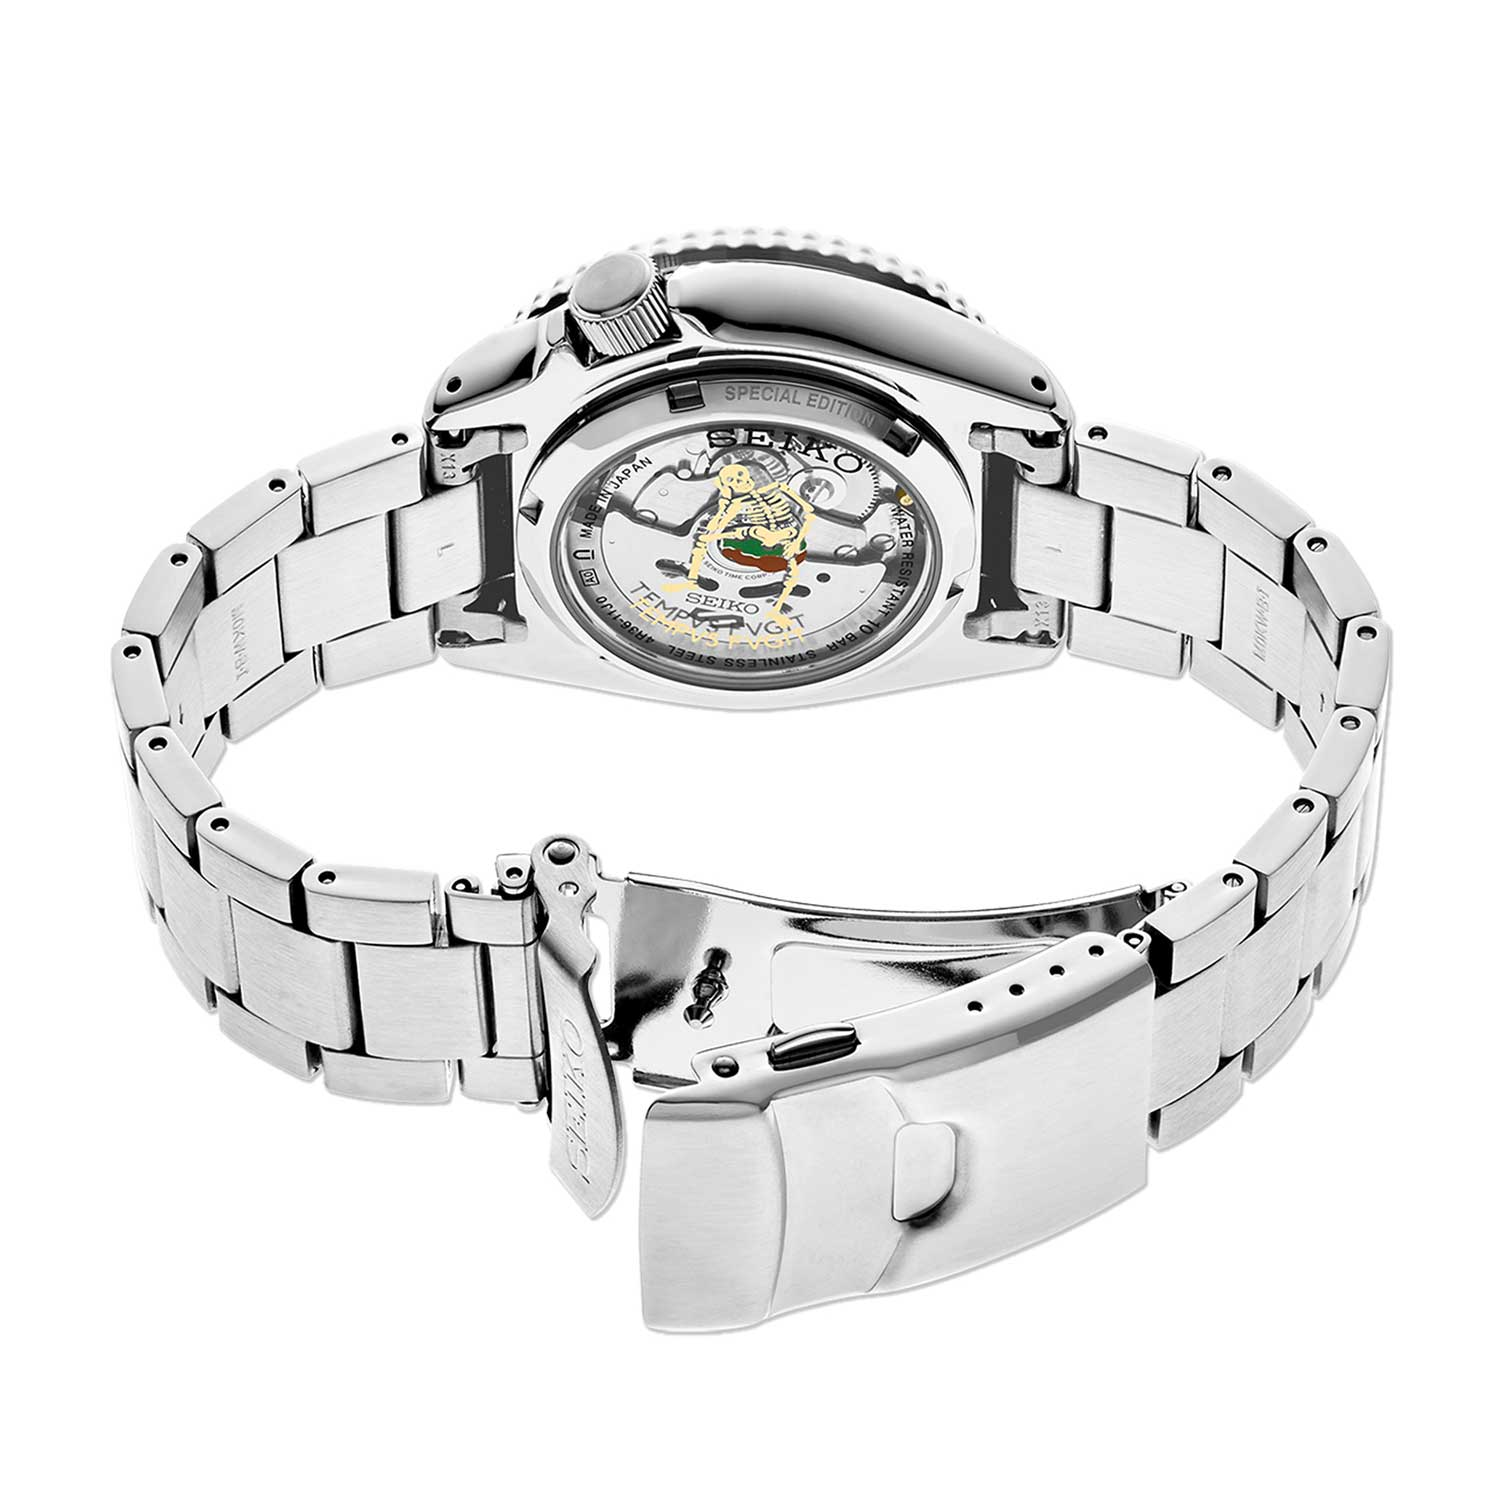 """The watch's caseback displays a laser engraved latin motto """"TEMPVS FVGIT"""" from the Latin poet Virgil."""